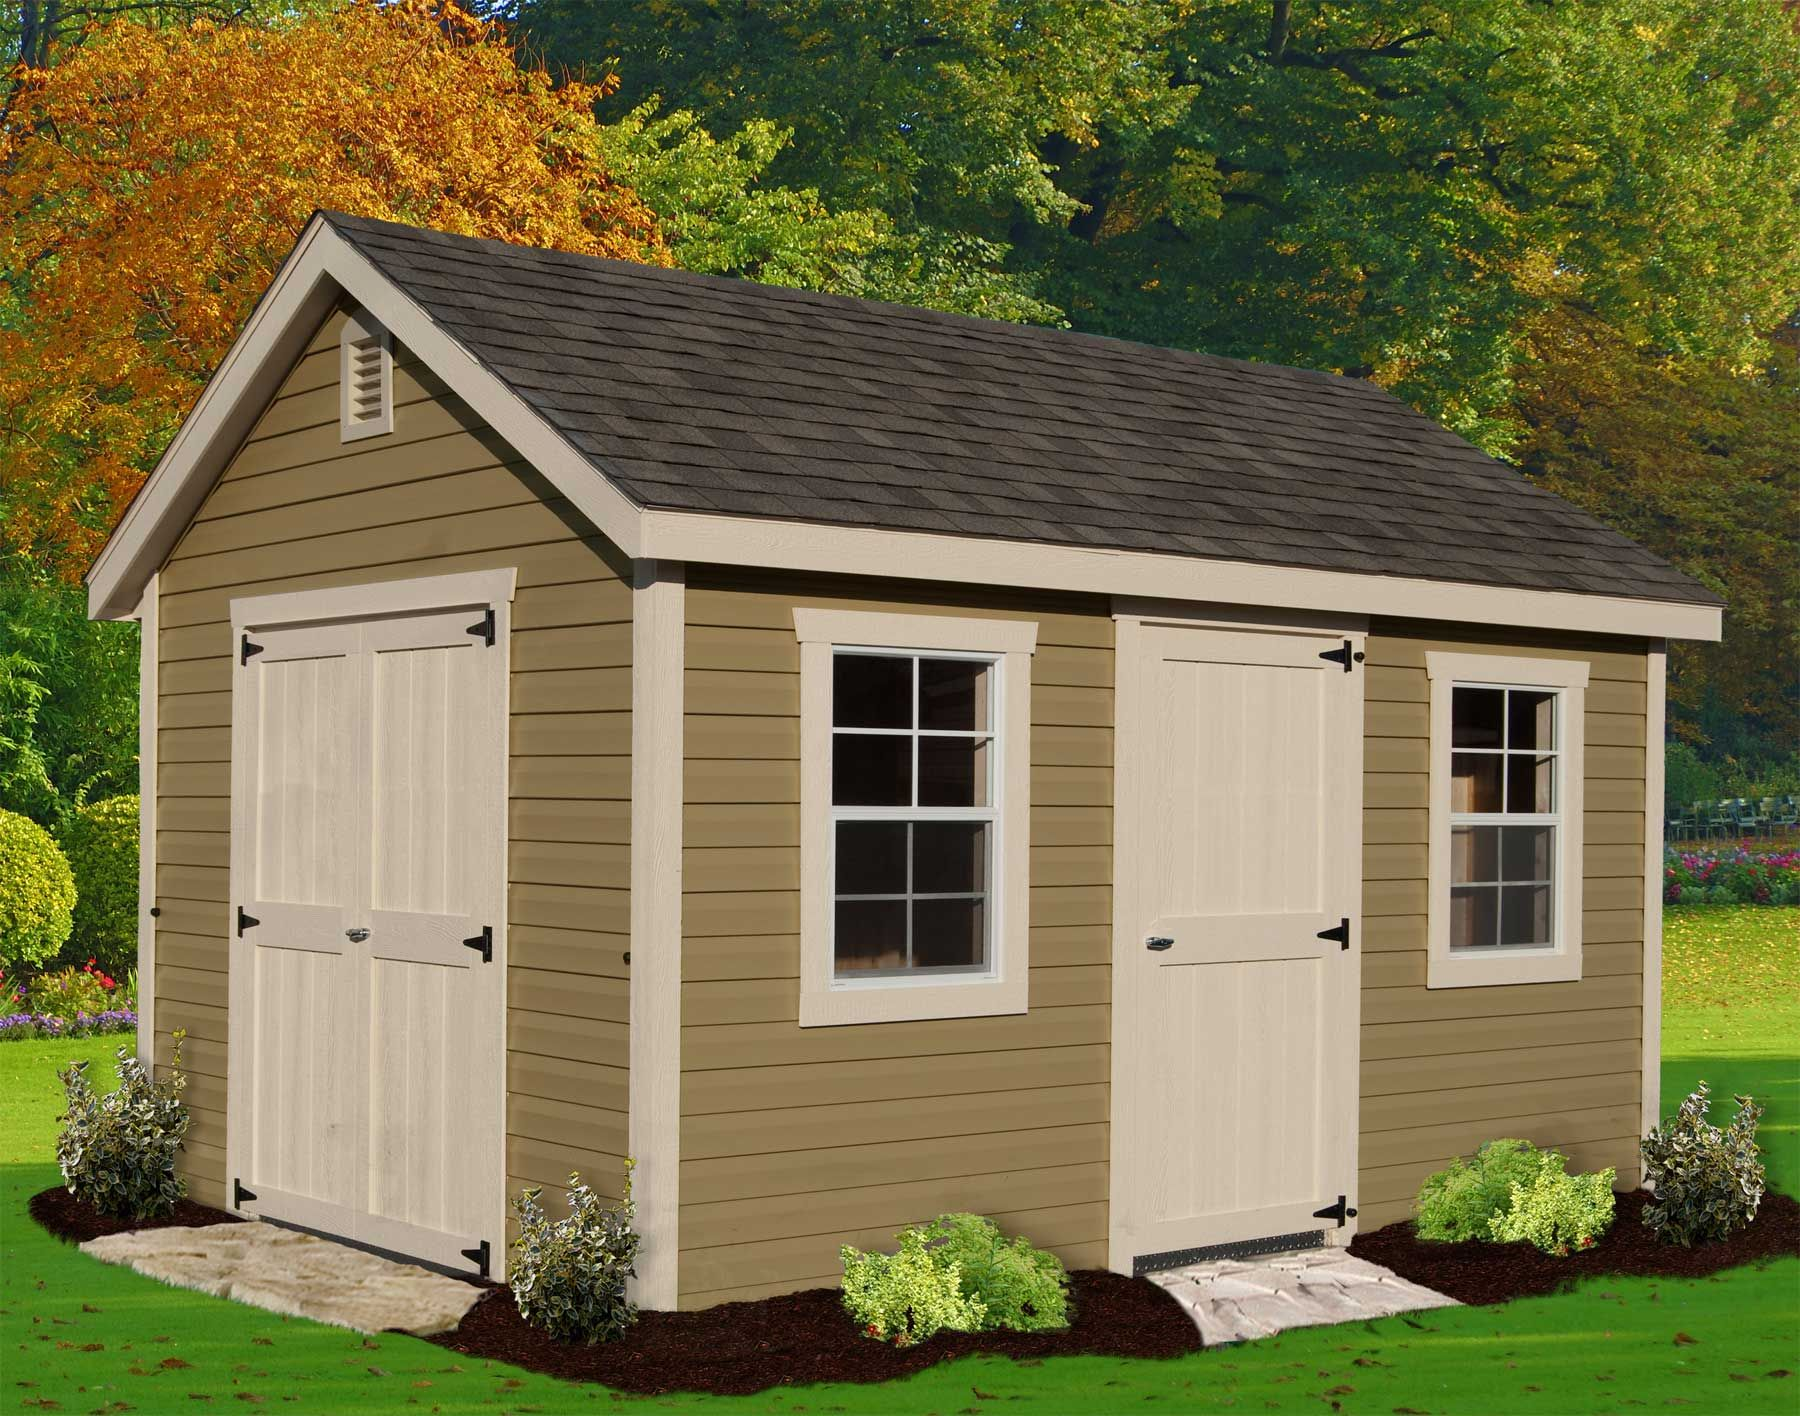 Vinyl Siding Deluxe Estate Sheds Sheds By Siding Backyard Sheds Backyard Storage Sheds Shed Plans 12x16